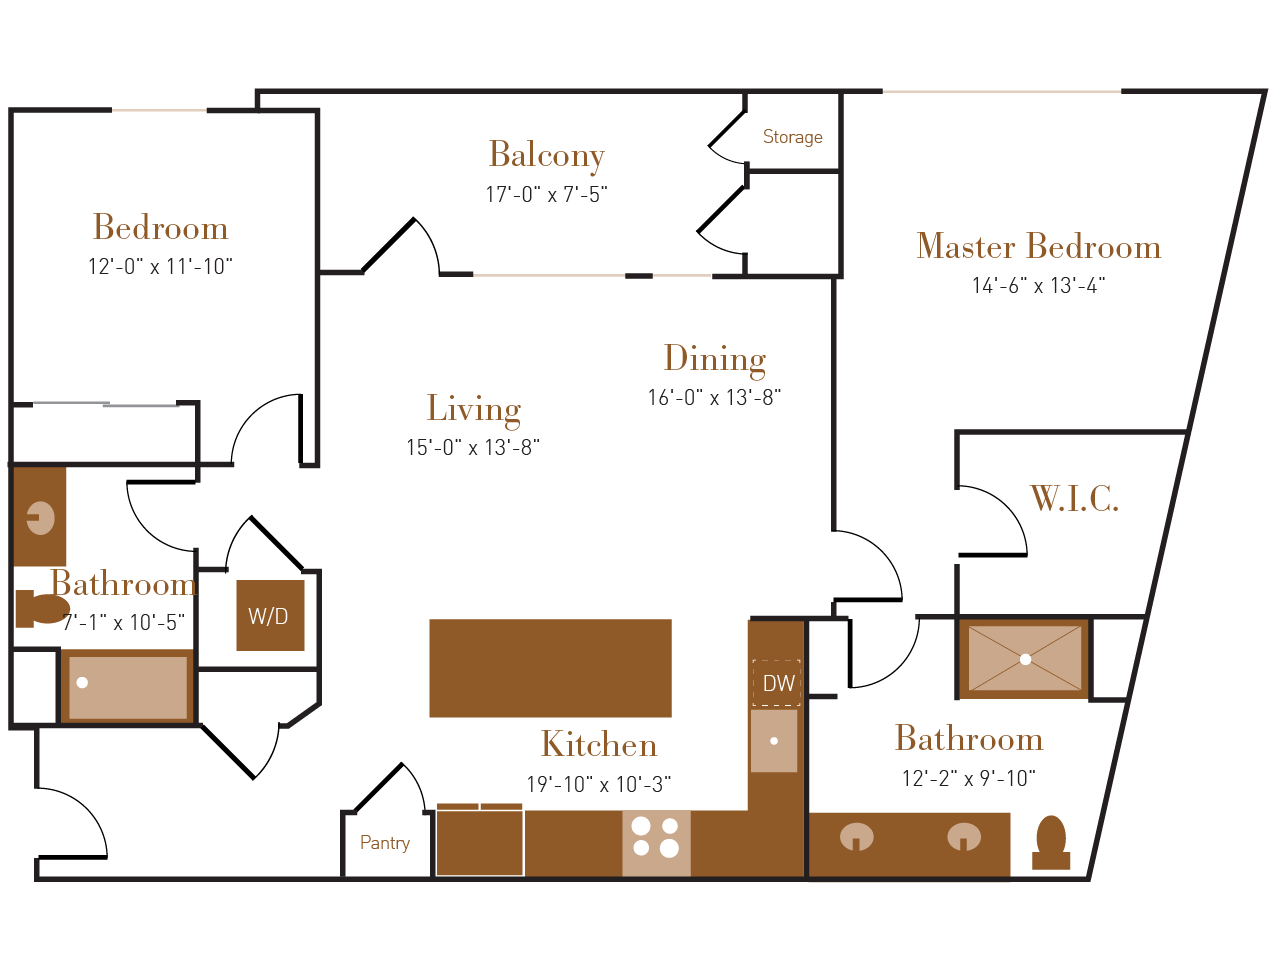 B Four floor plan diagram. Two bedrooms, two bathrooms, an open kitchen dining and living area, a balcony, and a washer dryer.